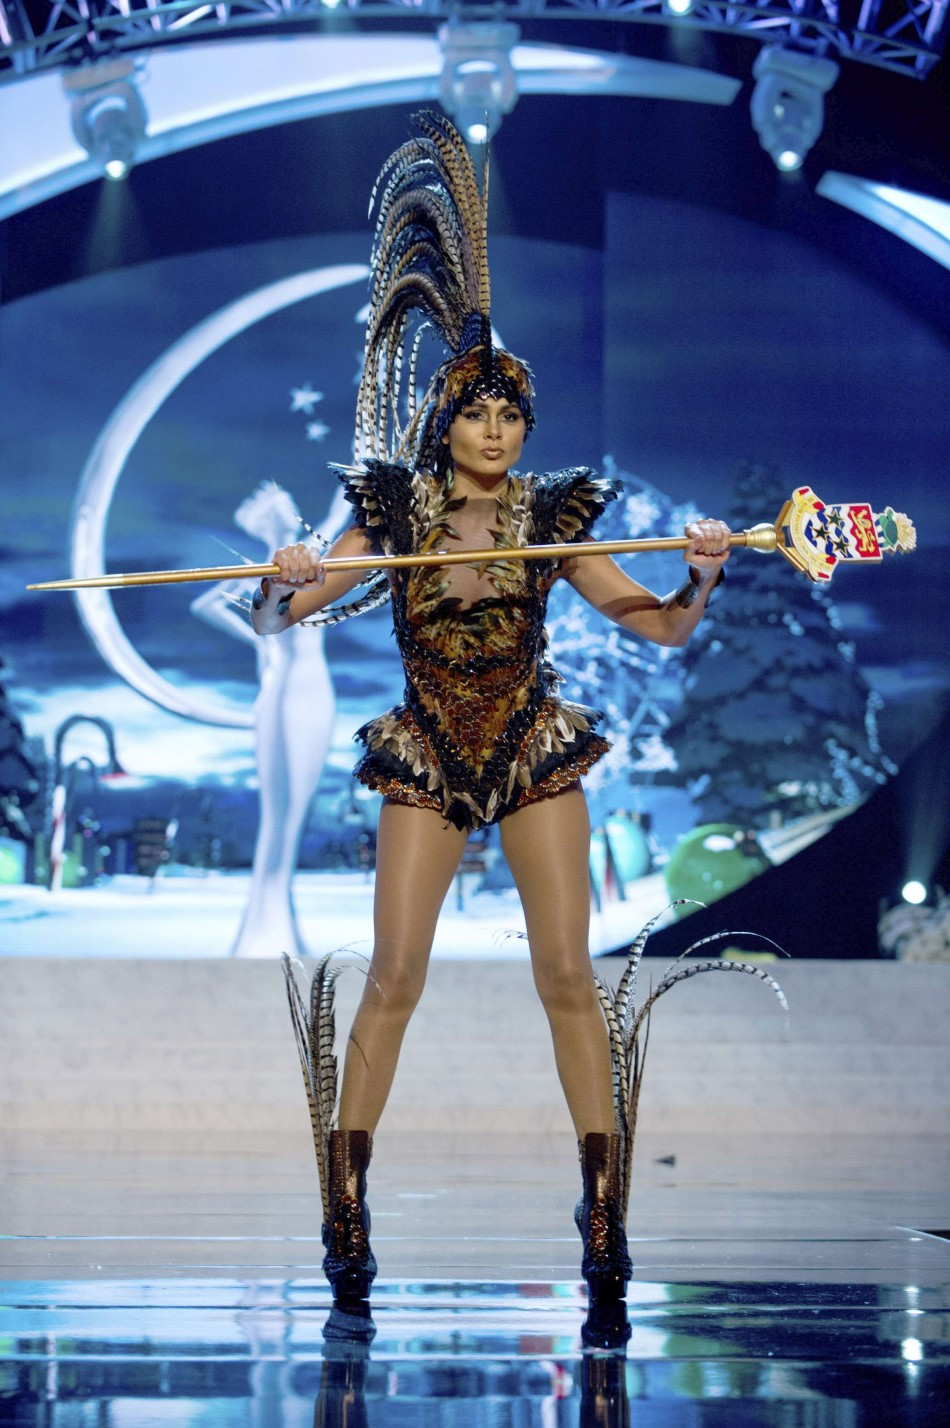 Miss Cayman Islands Lindsay Japal on stage at the 2012 Miss Universe National Costume Show at PH Live in Las Vegas